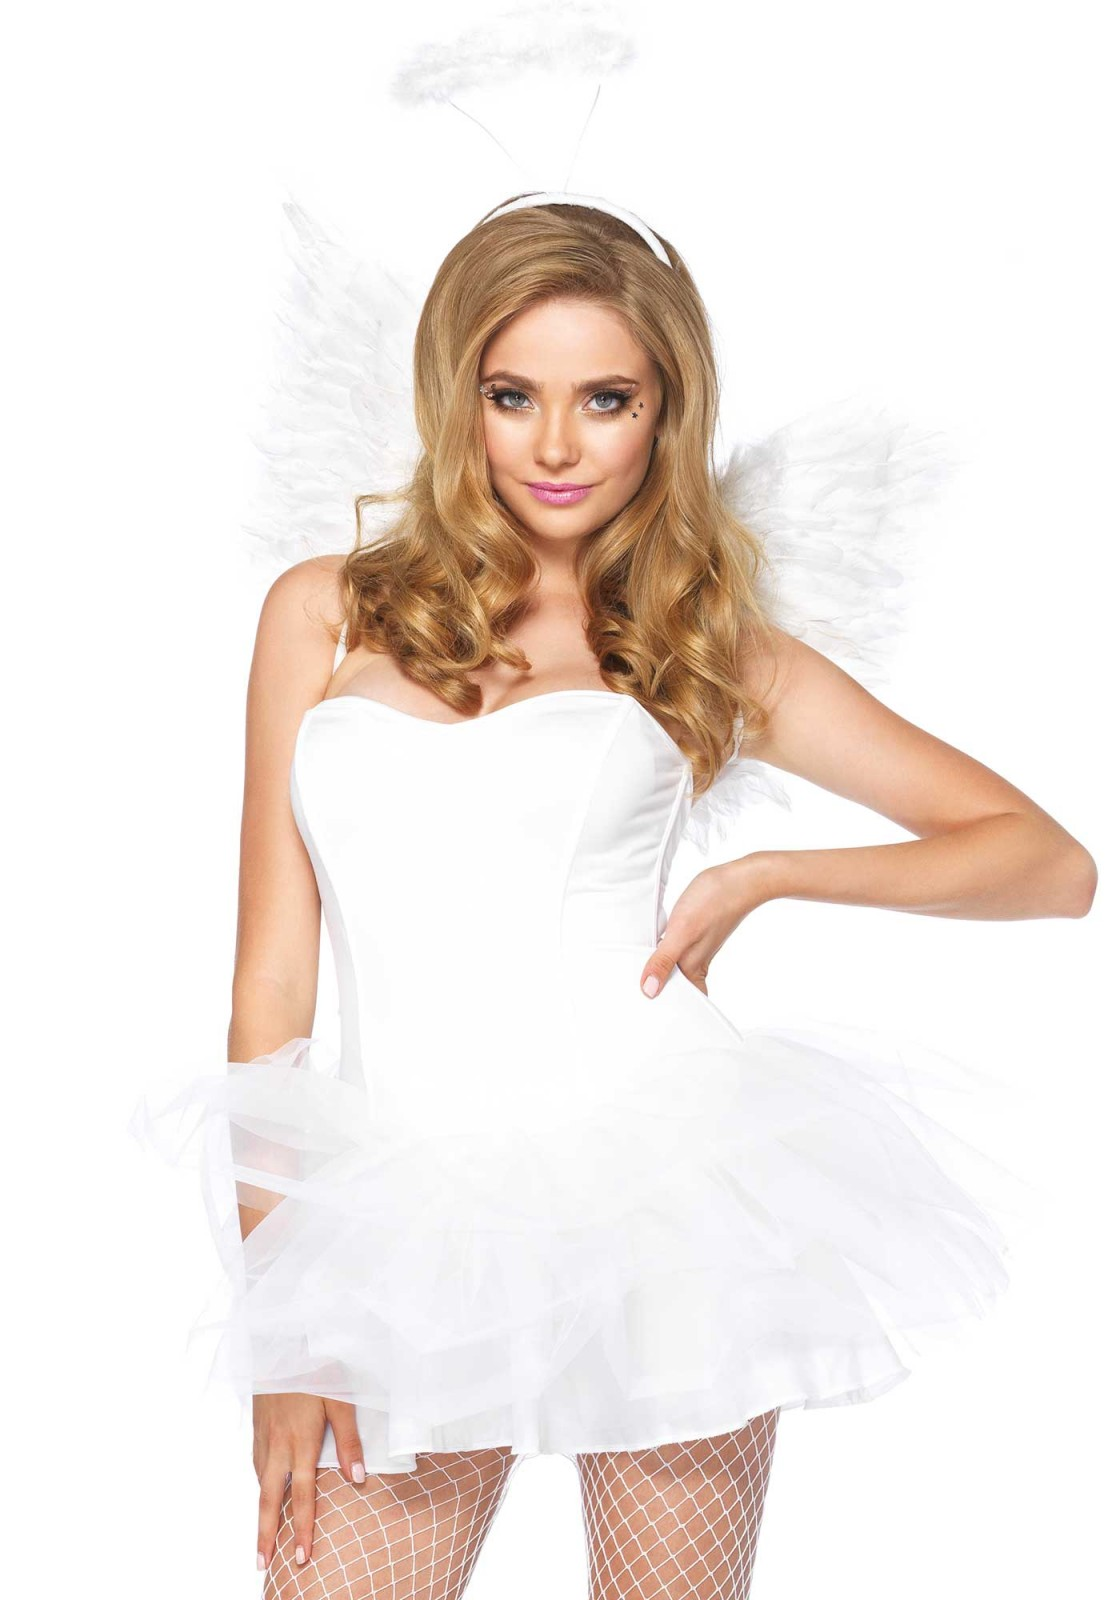 2Pc. Angel kit, consisting of faux feather wings and fluffy halo crown.